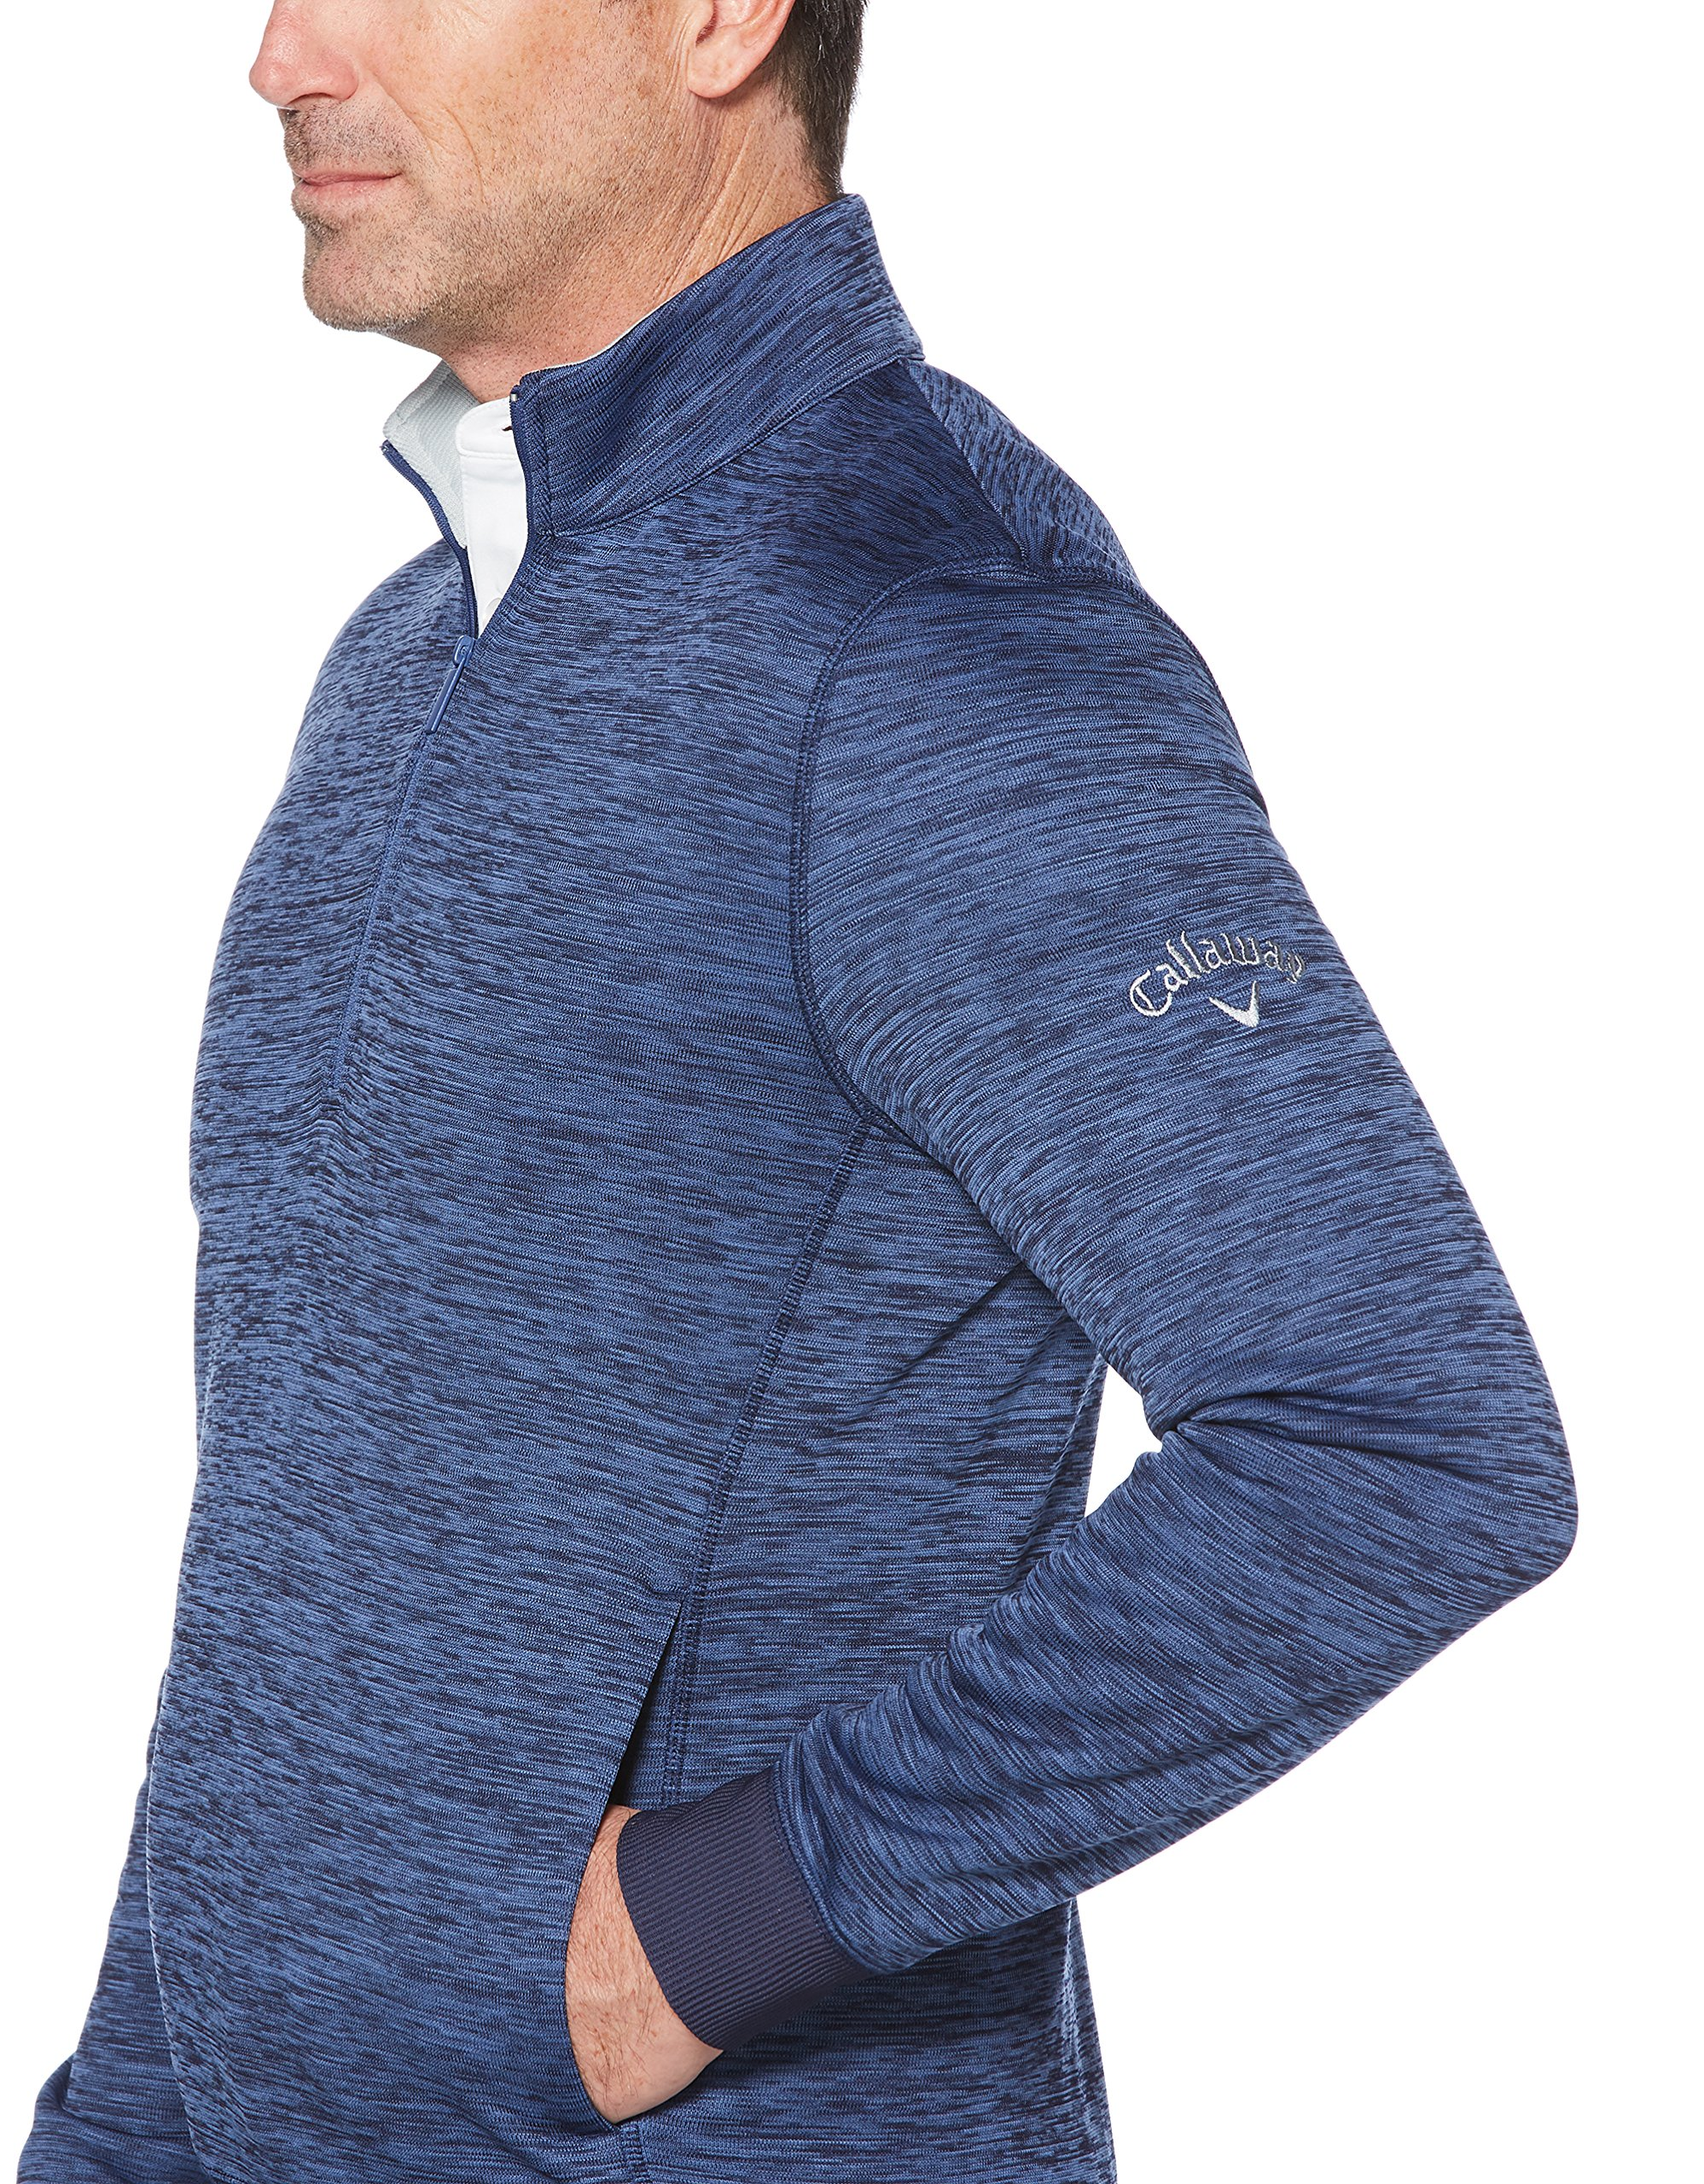 Callaway Men's Water Repellent 1/4 Zip Golf Pullover, Peacoat Heather, Medium by Callaway